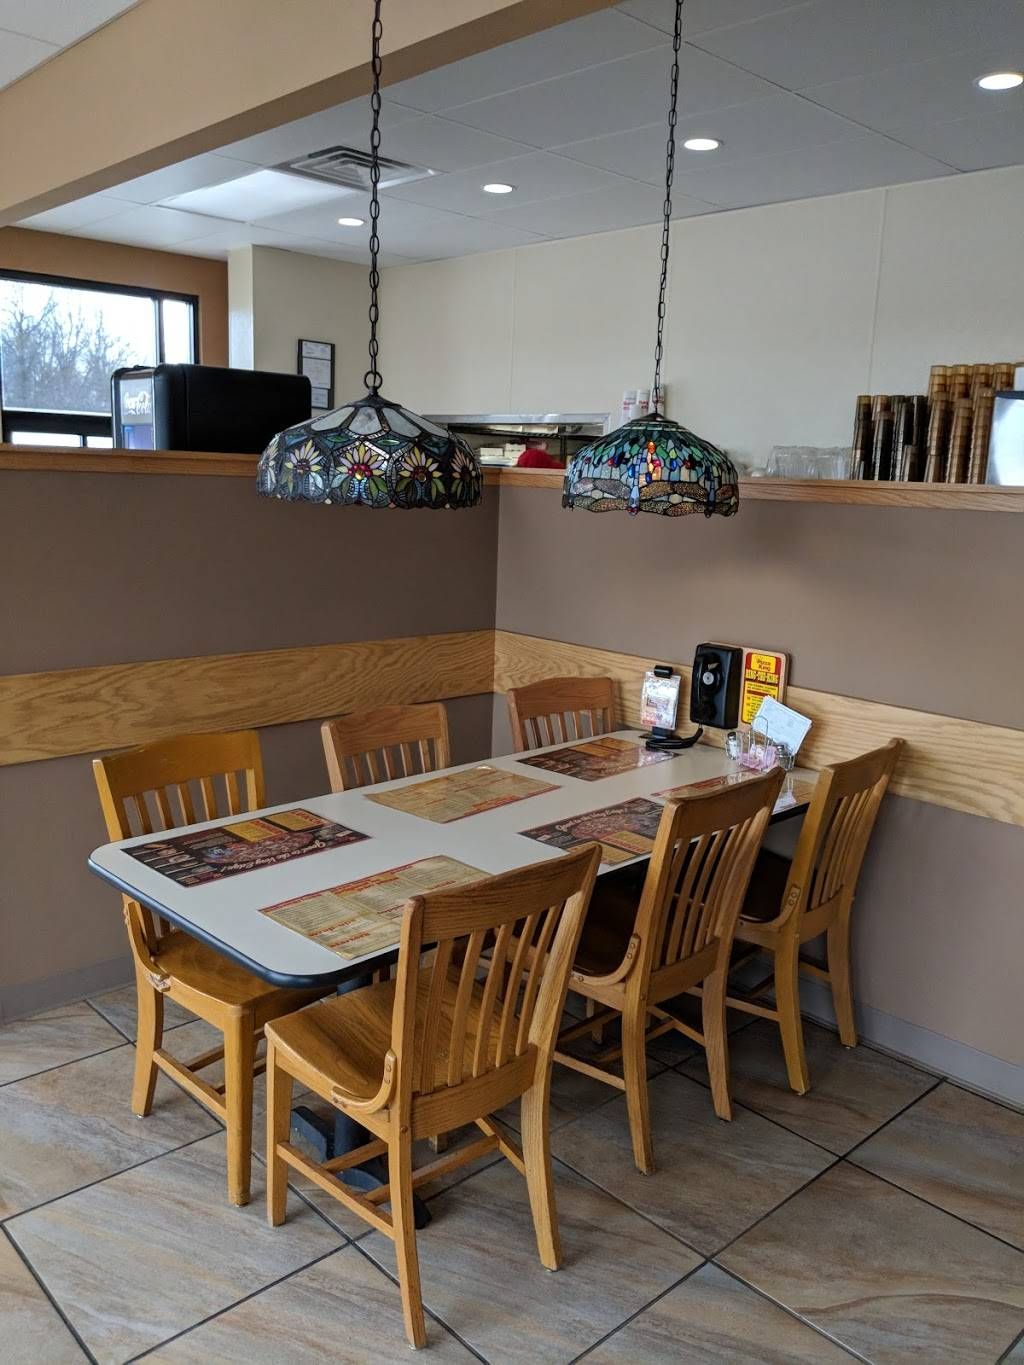 Pizza King - meal delivery    Photo 10 of 10   Address: 7203 Maplecrest Rd, Fort Wayne, IN 46835, USA   Phone: (260) 739-7624